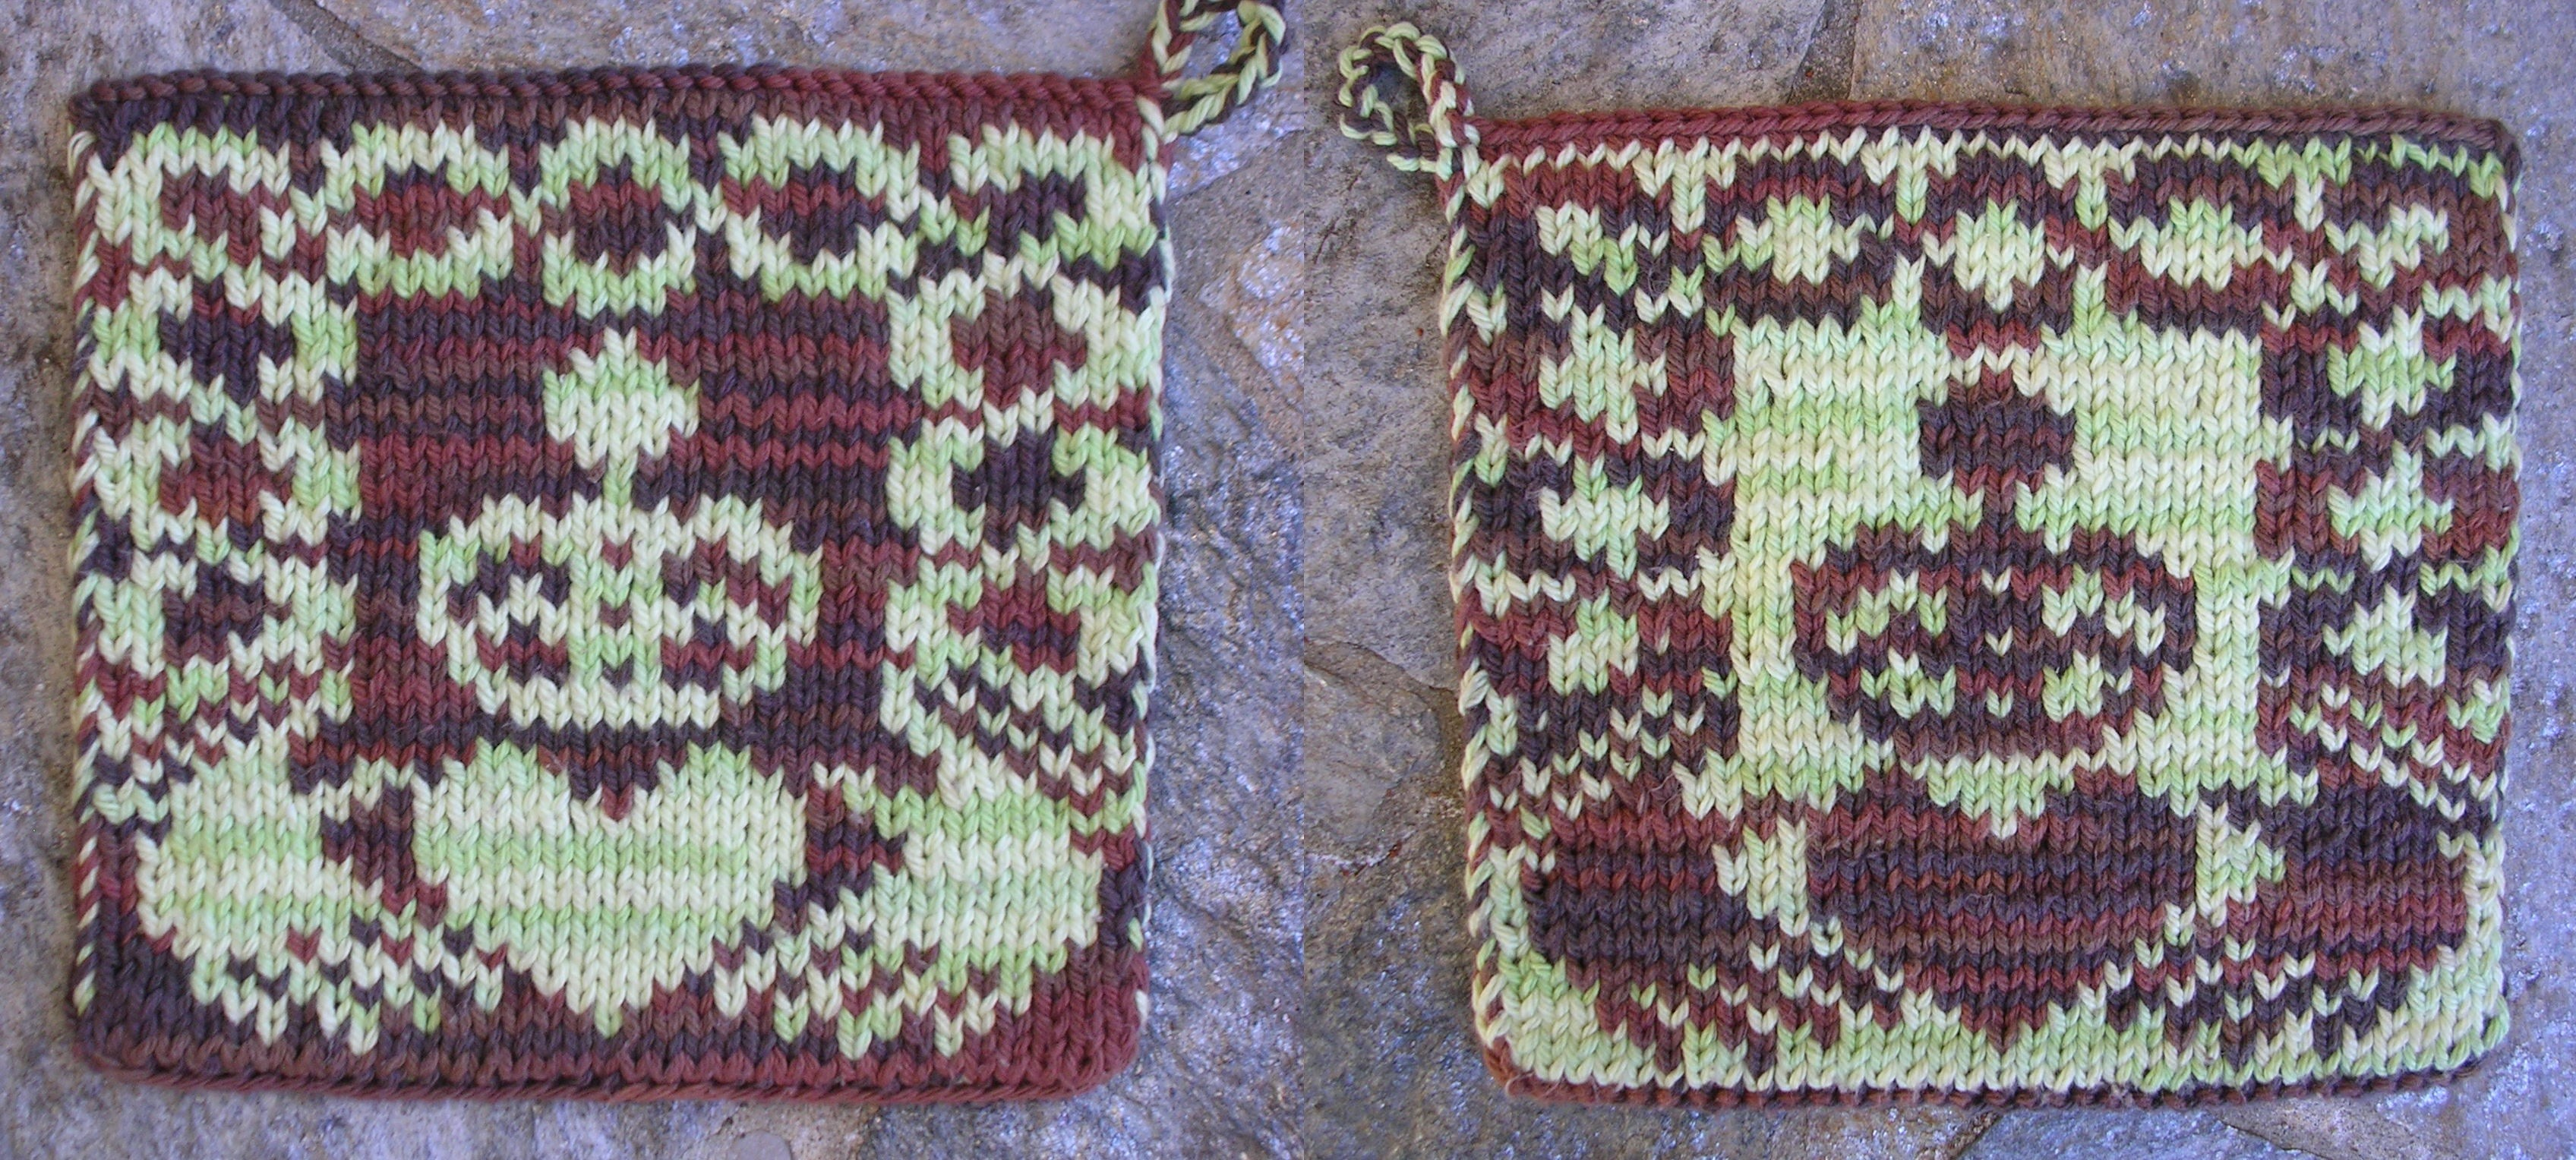 Double Knitting Patterns A Knitting Blog